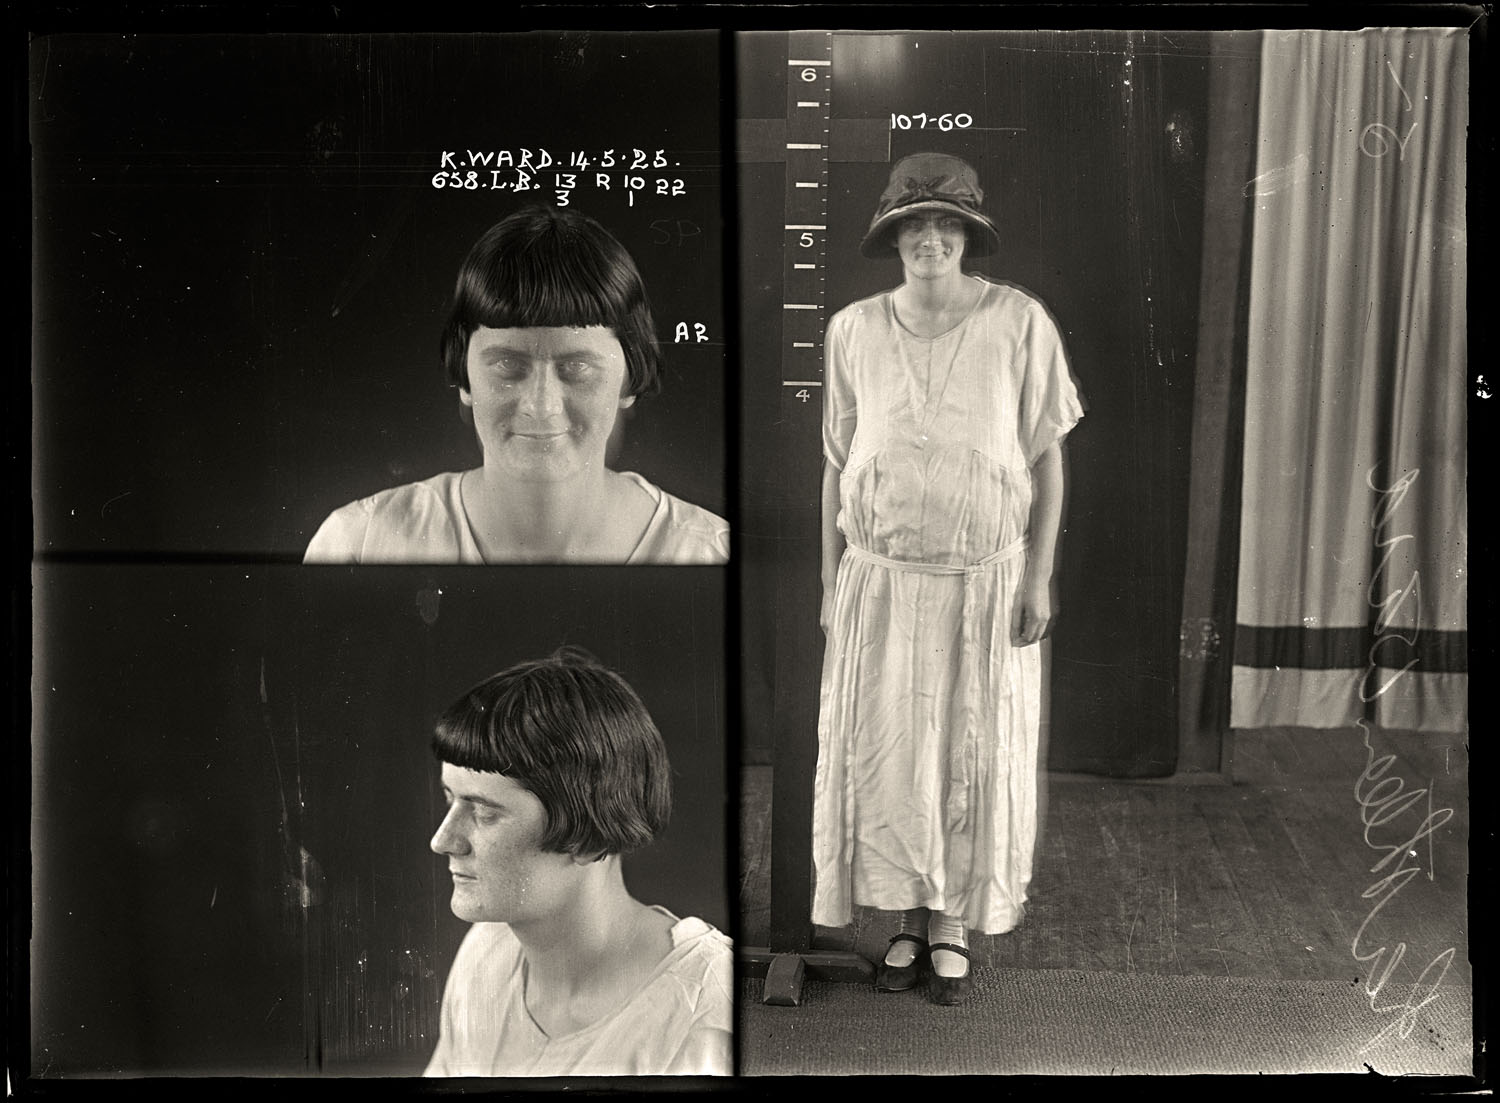 Kathleen Ward, criminal record number 658LB, 14 May 1925. State Reformatory for Women, Long Bay.